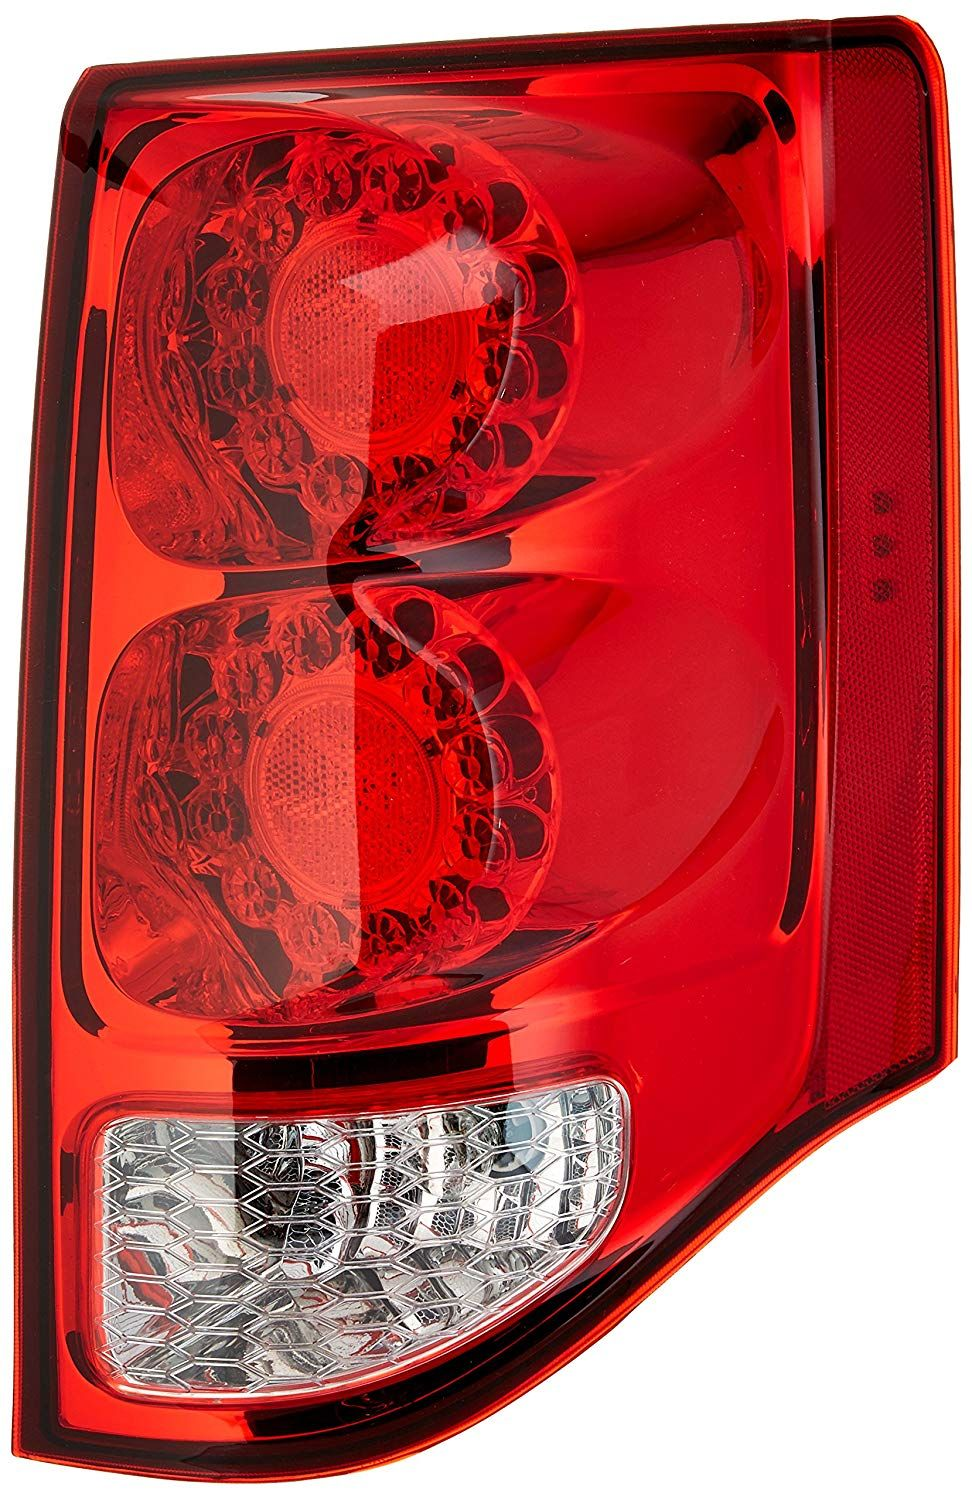 Tyc 11 6369 00 1 Dodge Grand Caravan Right Replacement Tail Lamp Click Image To Review More Details This Is An Affili Grand Caravan Automotive Repair Tyc